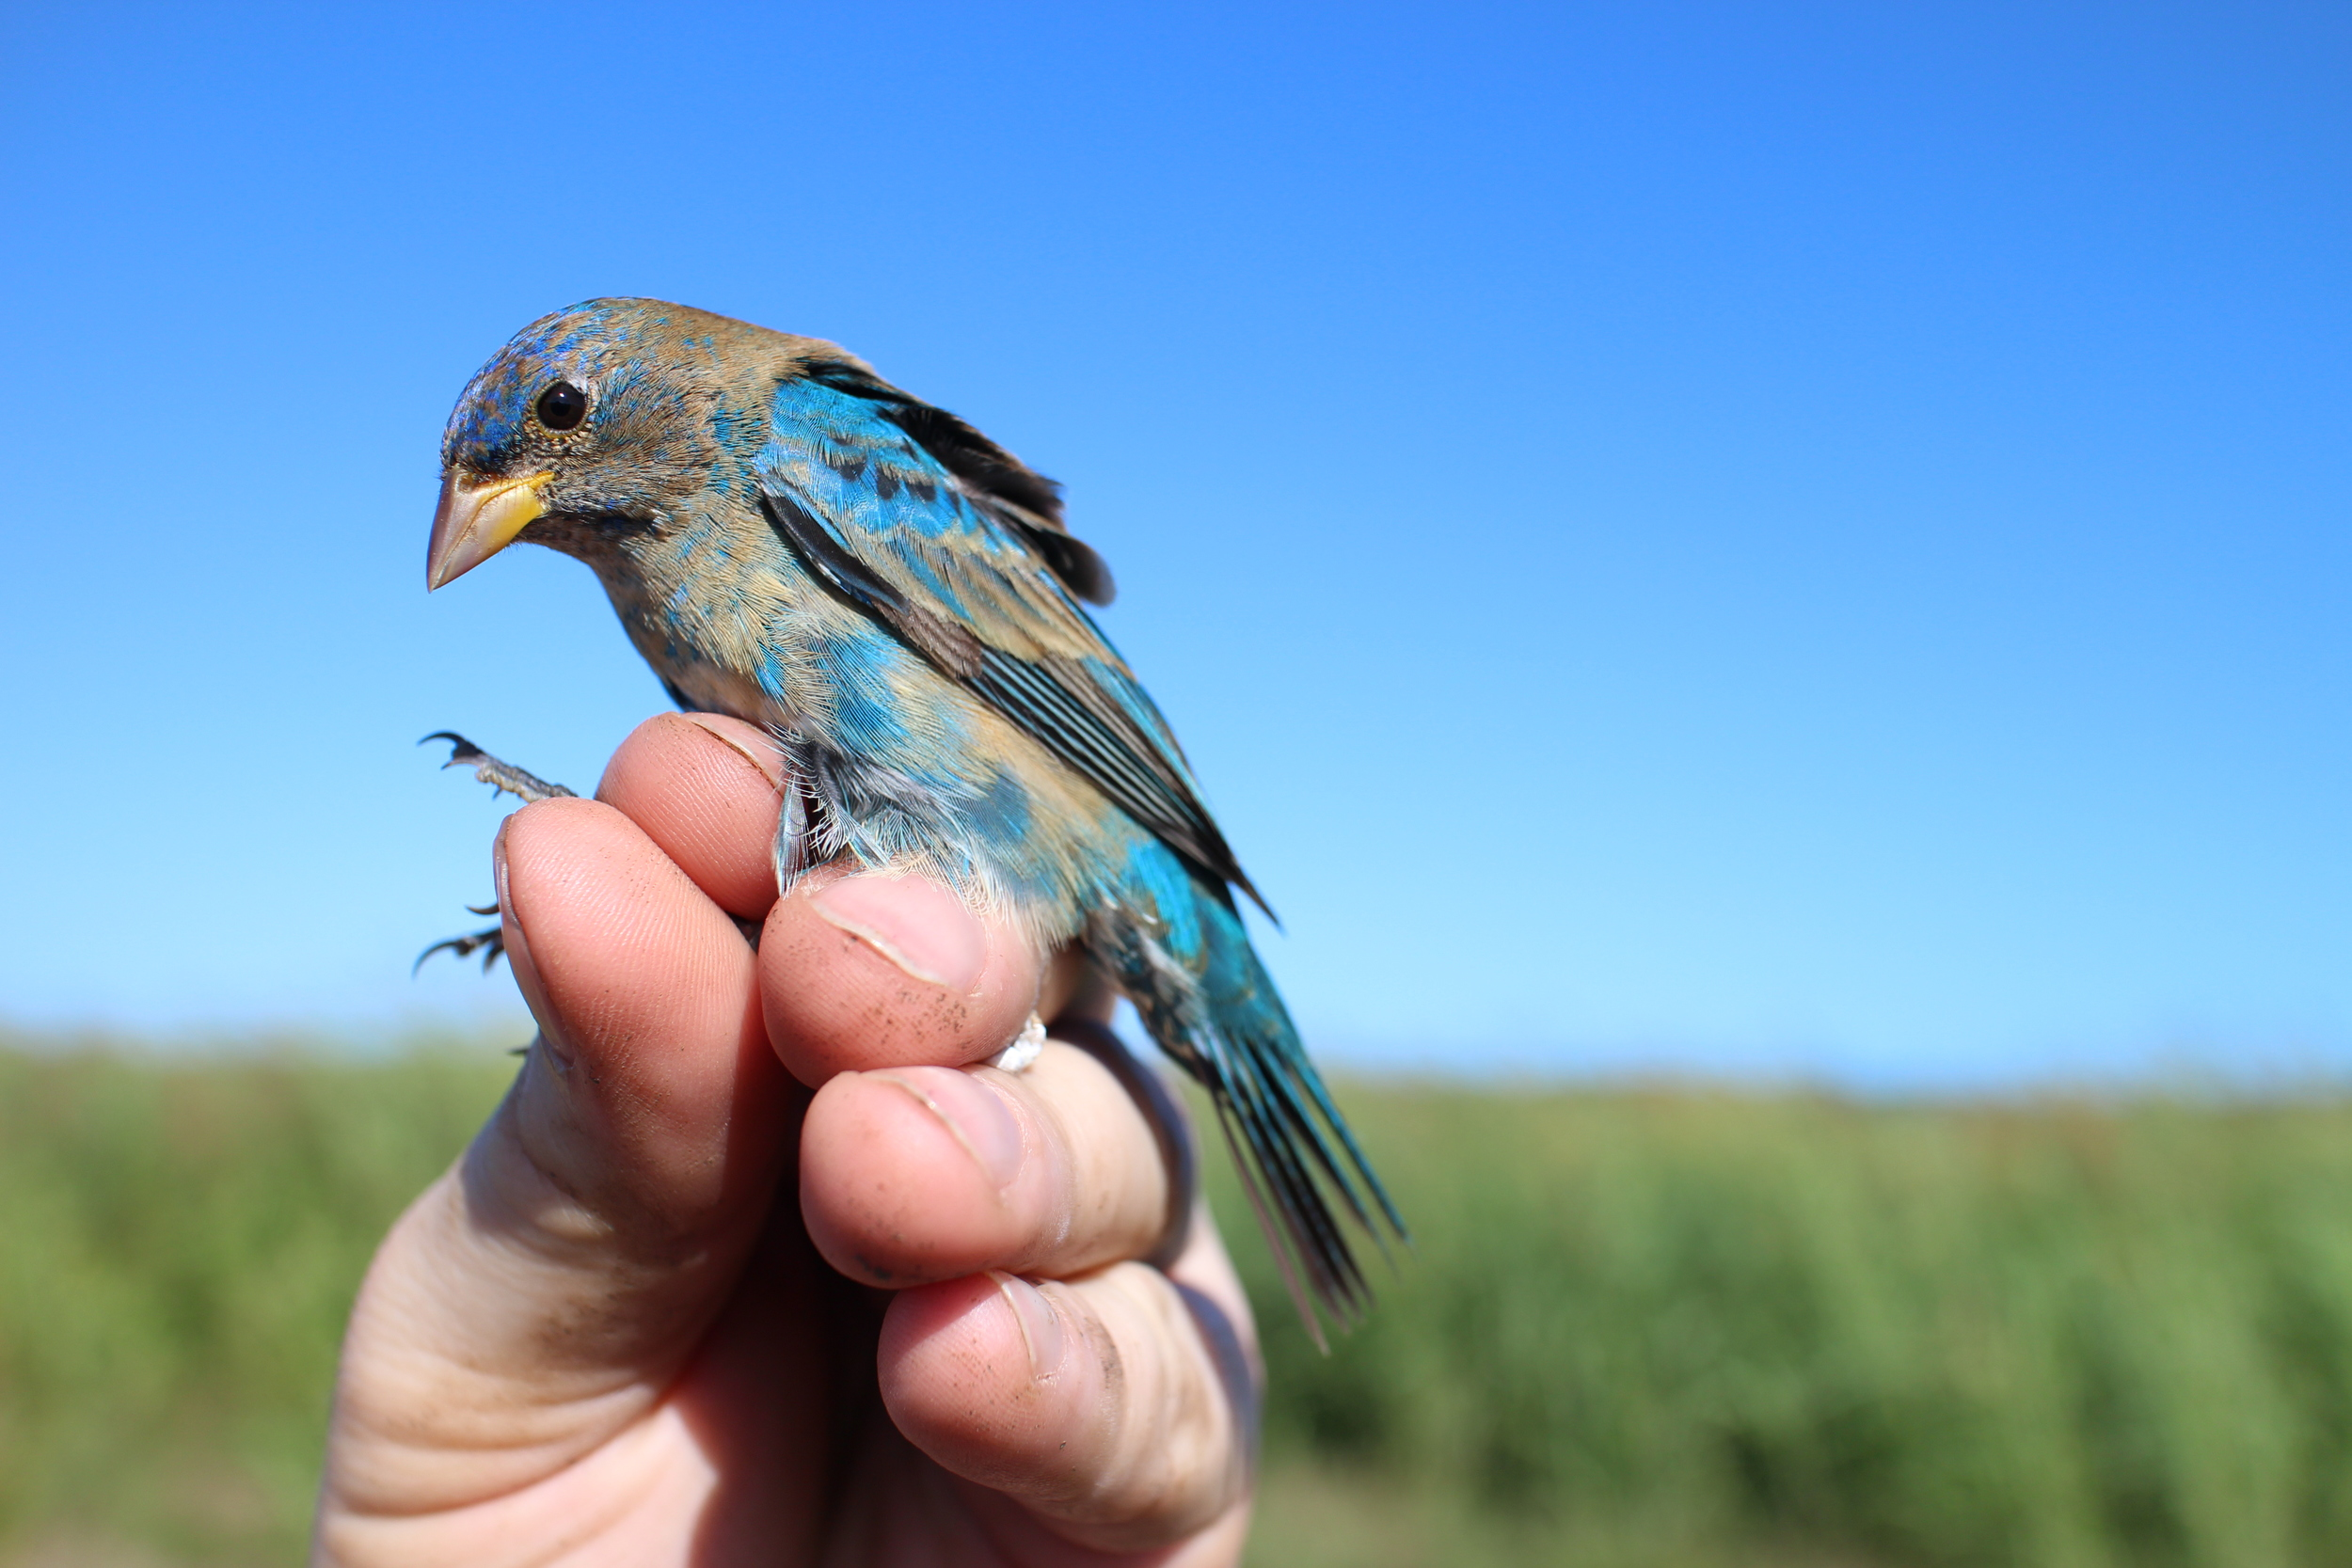 While mistnetting at the agriculture research station in La Parguera we were excited to find this Blue Grosbeak ( Passerina caerulea ) in one of our nets!